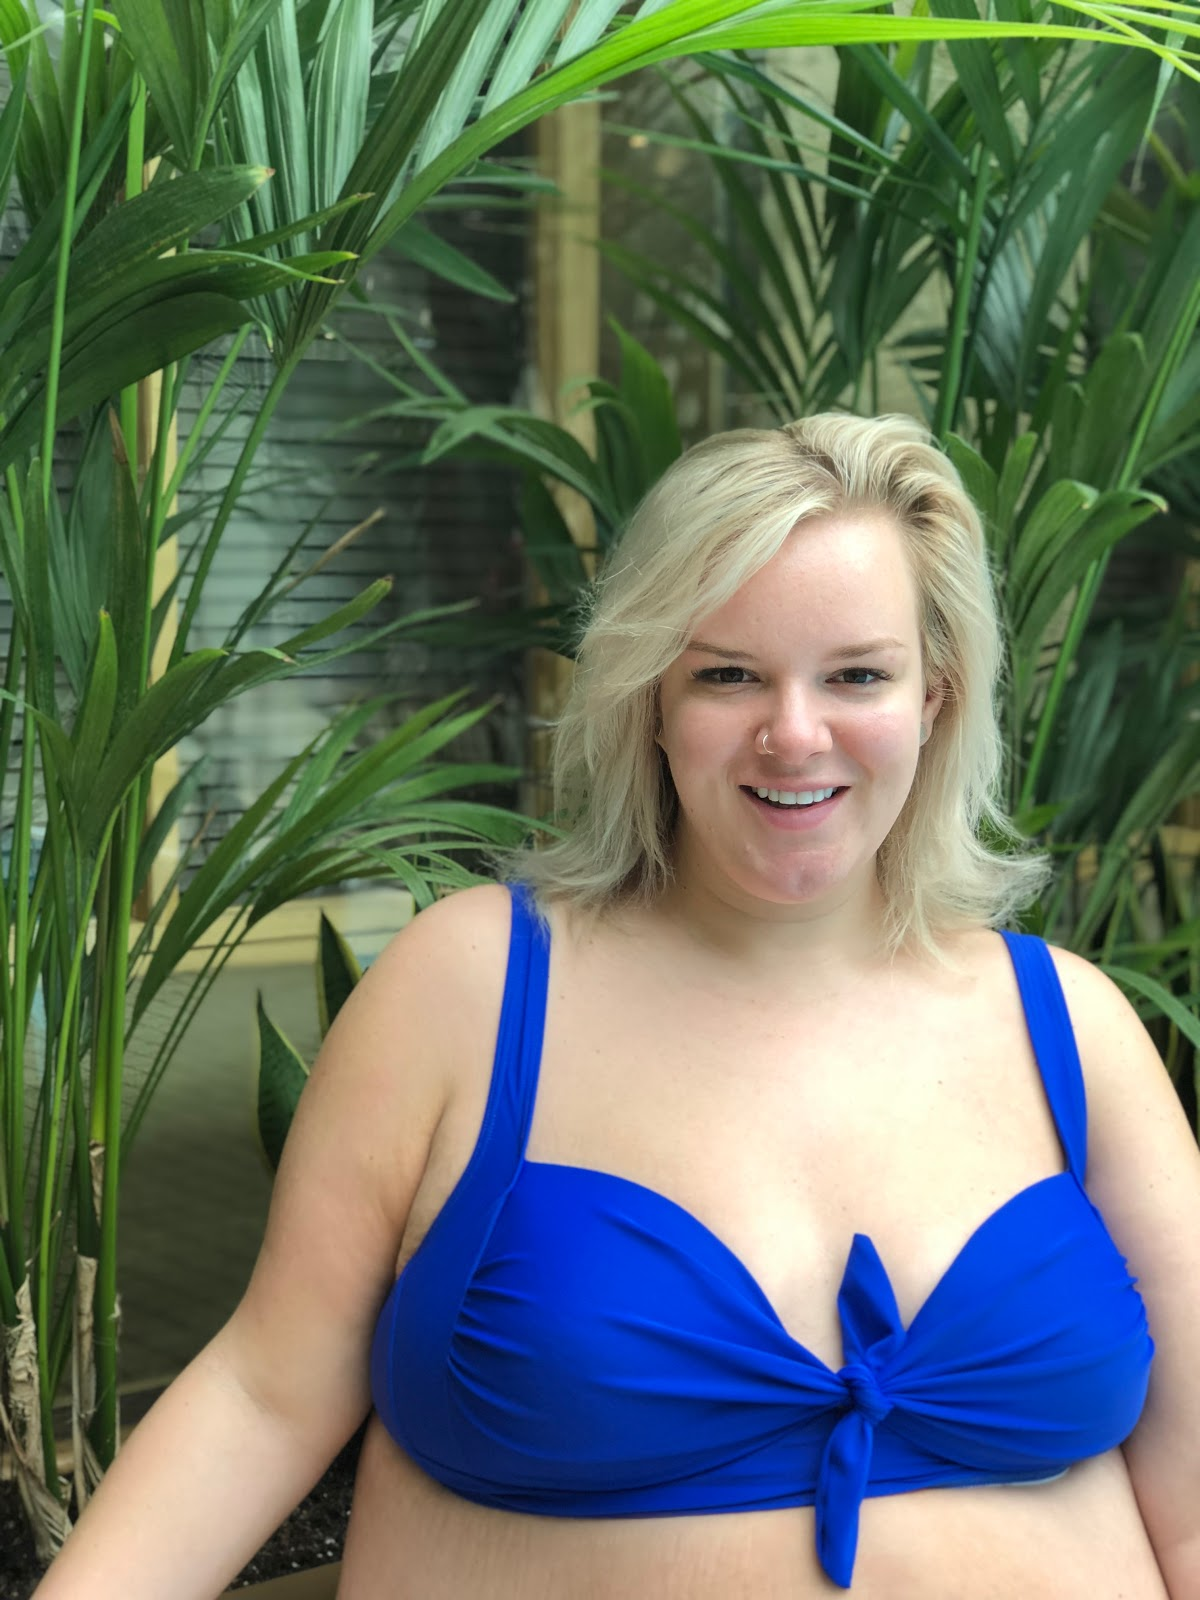 UK Plus Size Swimwear Blogger WhatLauraLoves wearing Simply Be at Matfen Hall